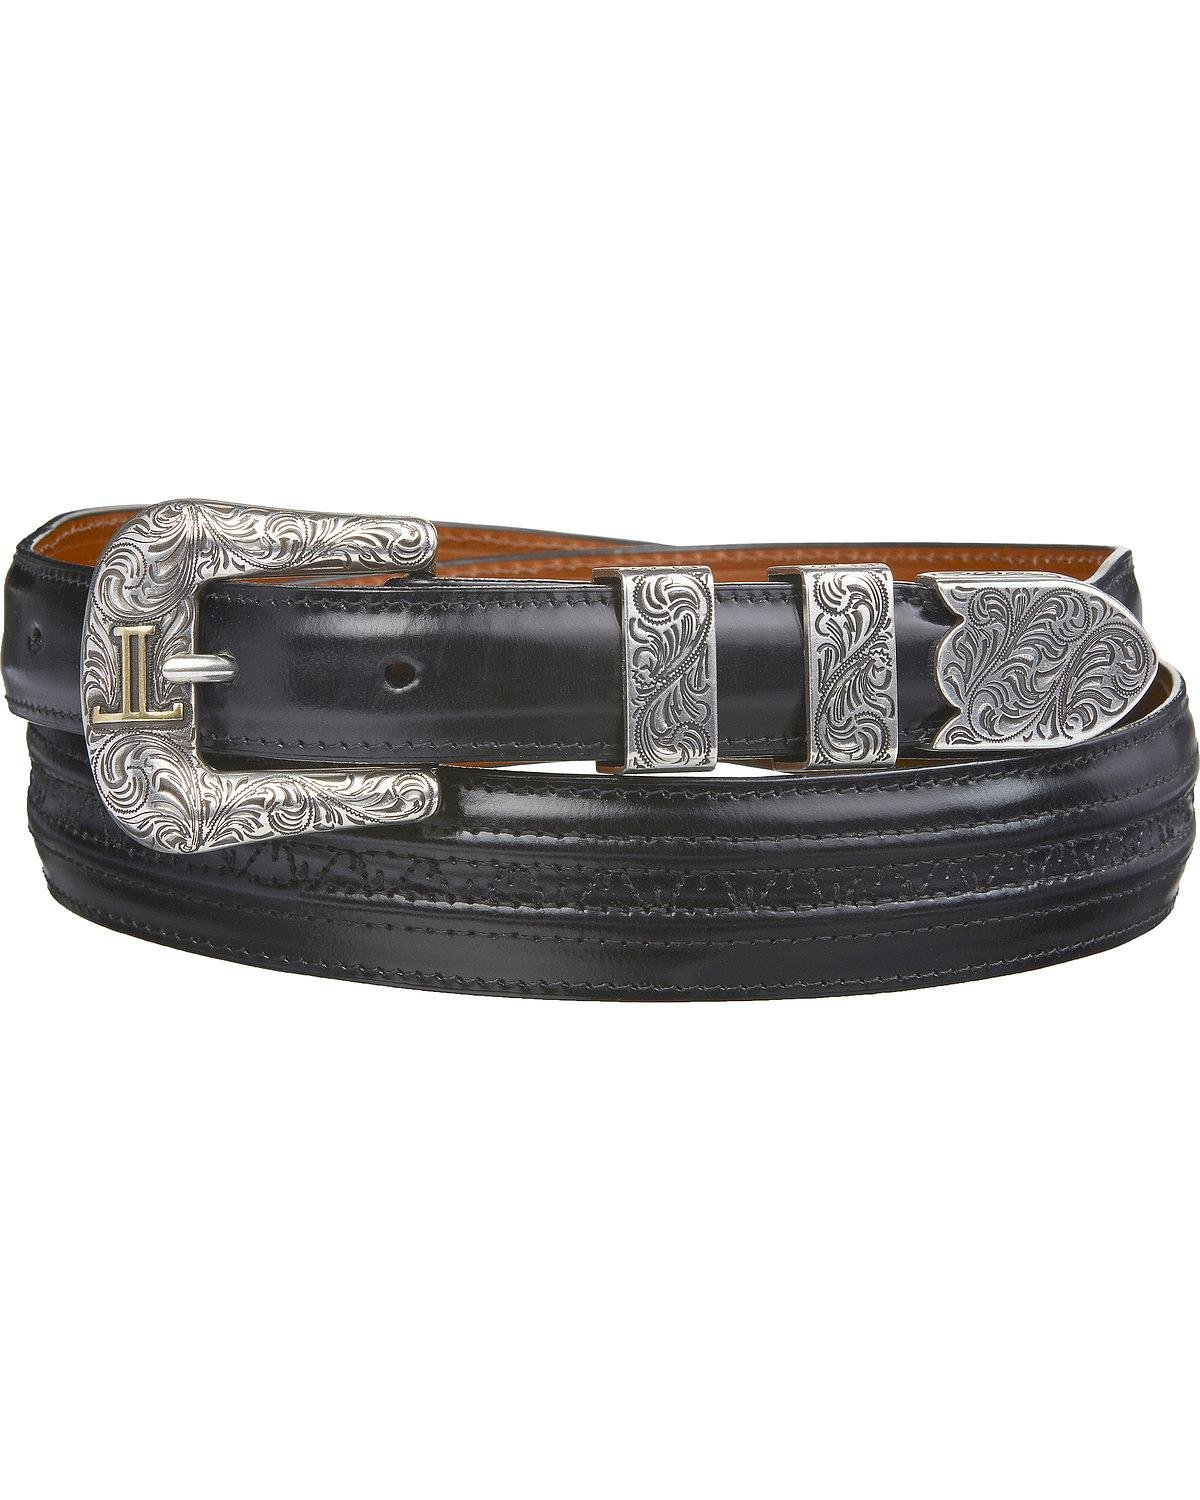 Lucchese Men's Goat With Hobby Stitch Leather Belt Black 36